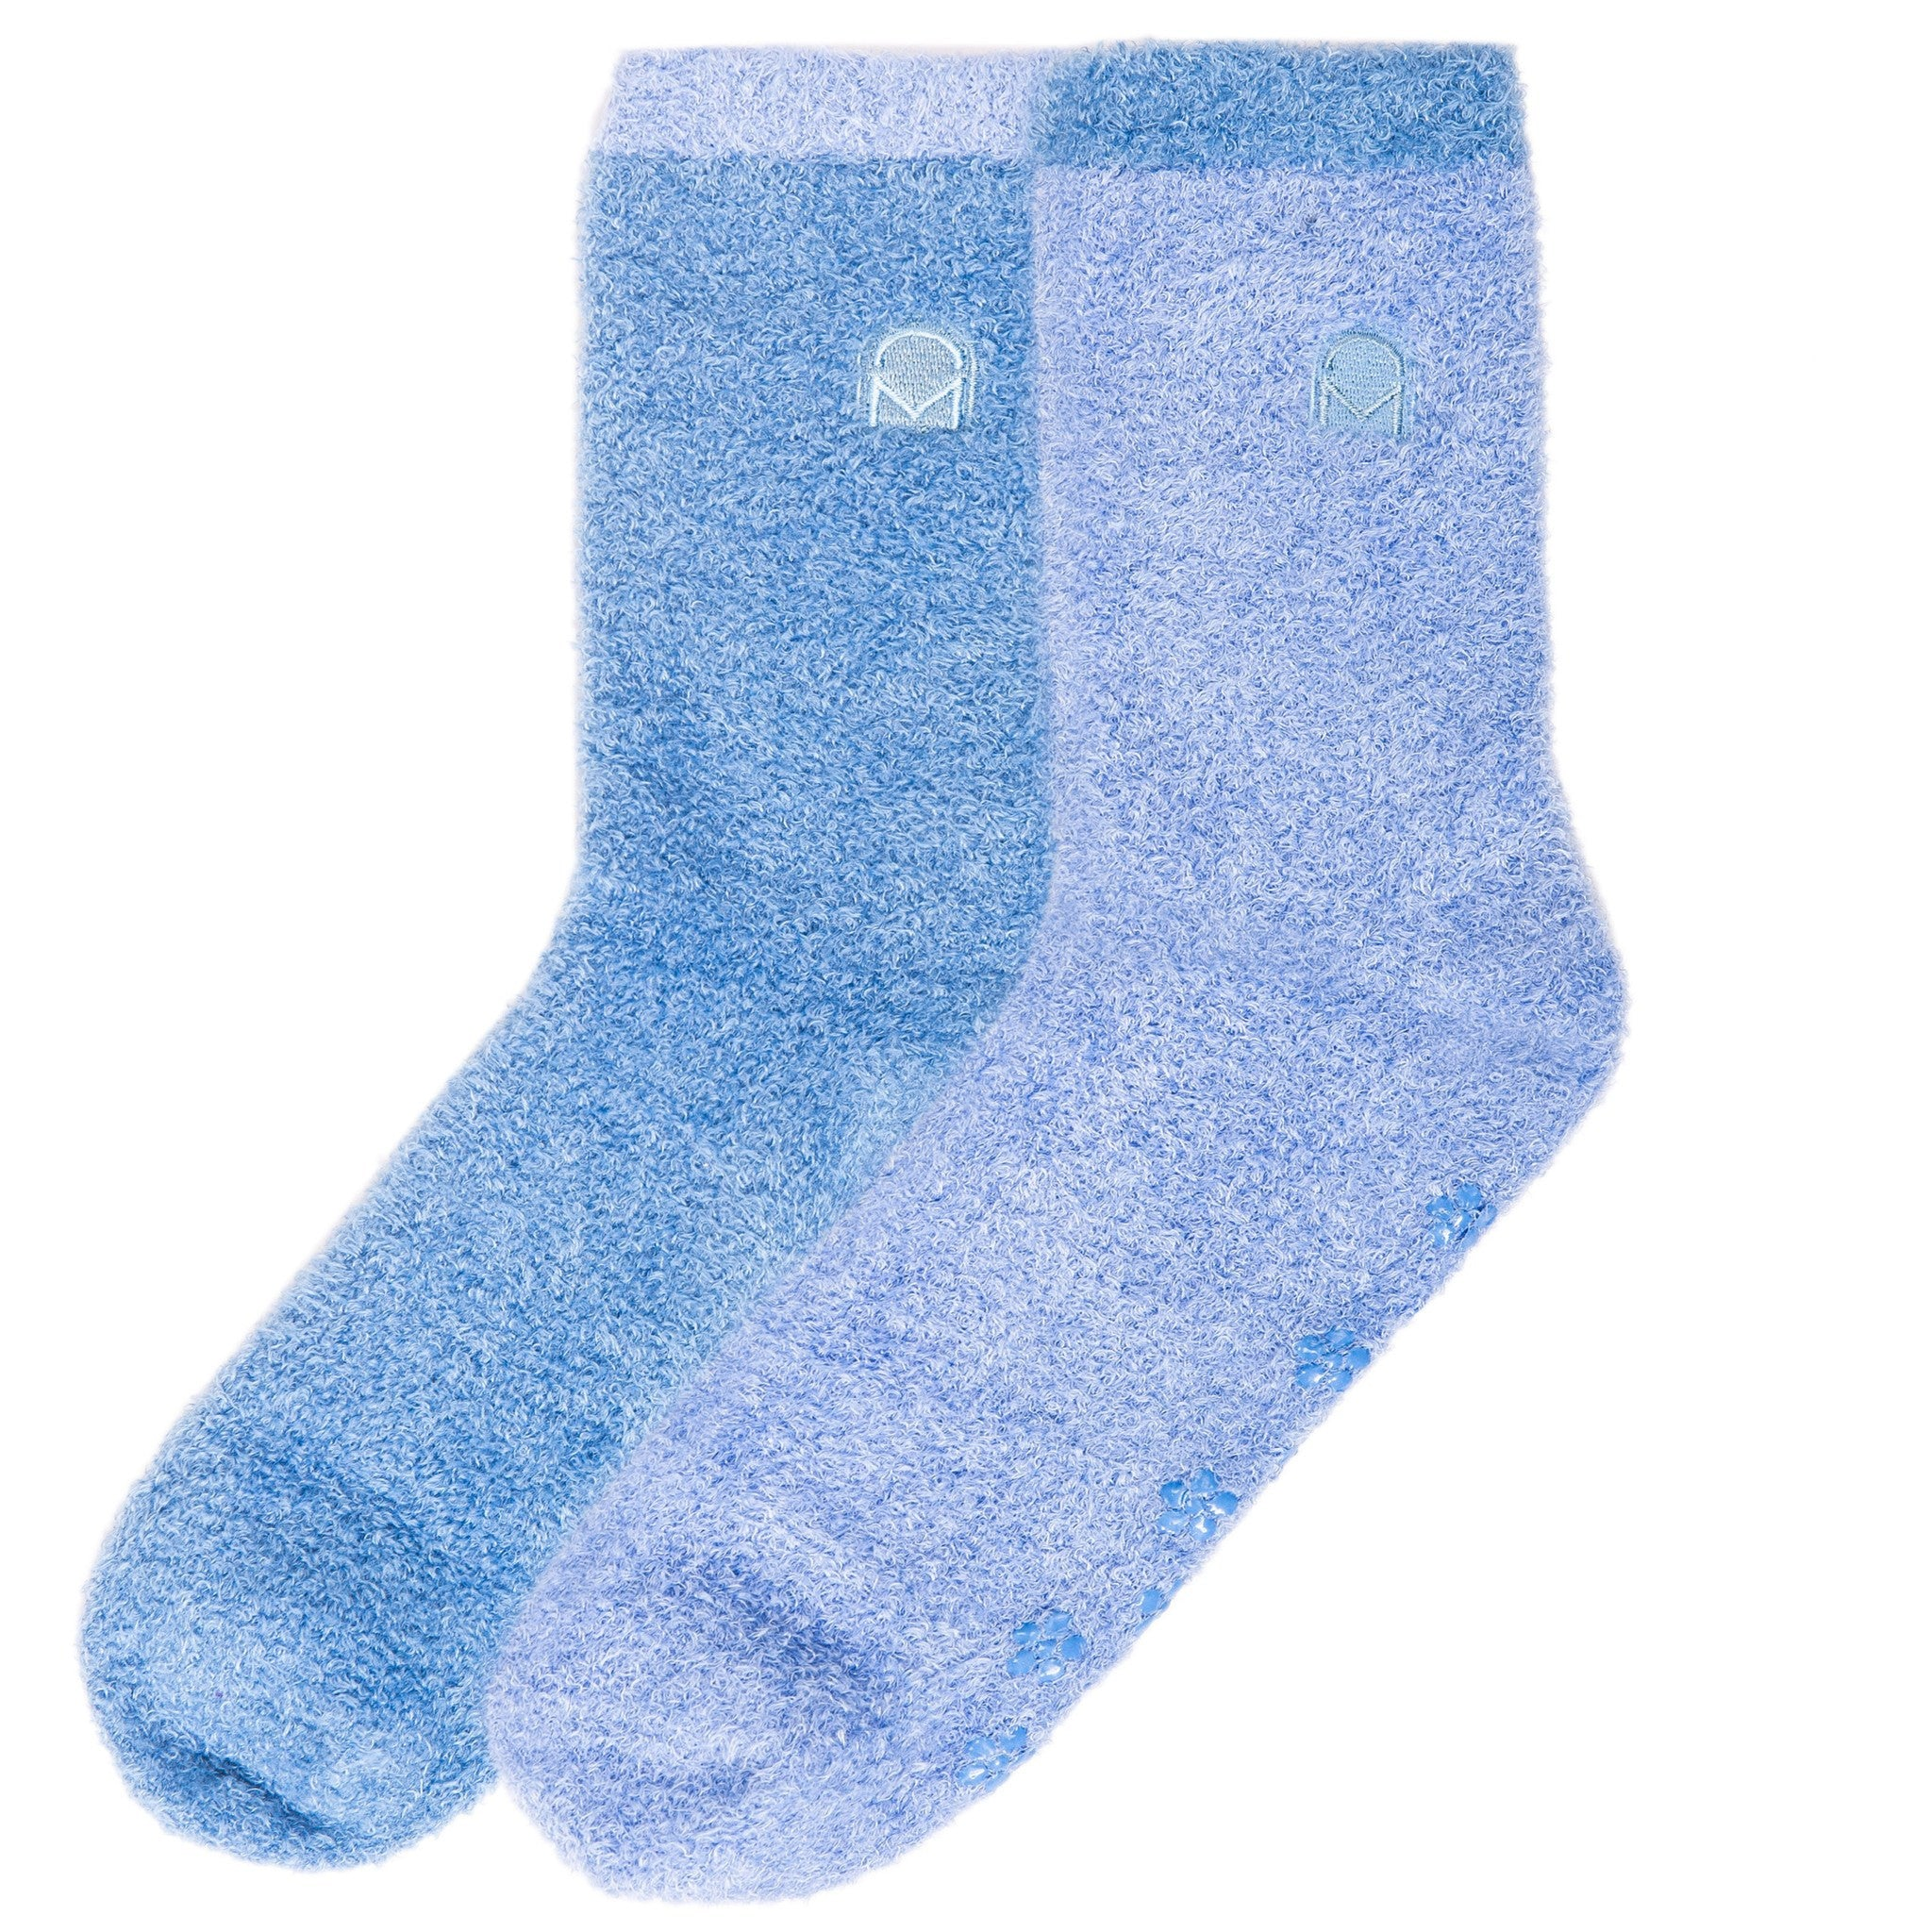 Women's Soft Anti-Skid Winter Feather Socks - 2-Pairs